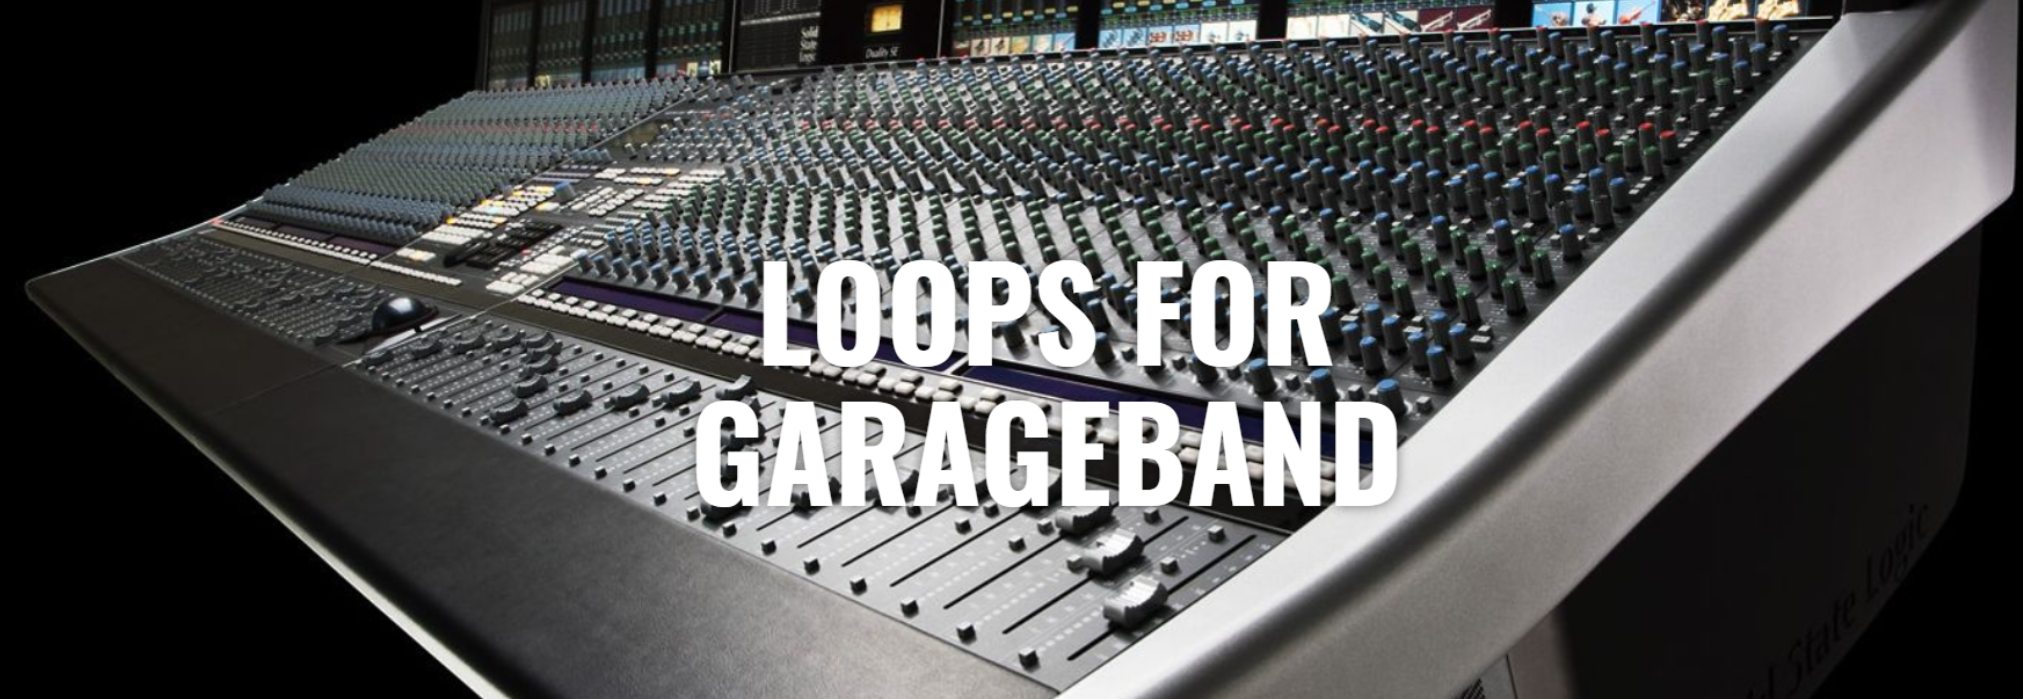 Loops for Garageband Offers Royalty-Free Stock Music for R&B, Hip Hop and Cinema